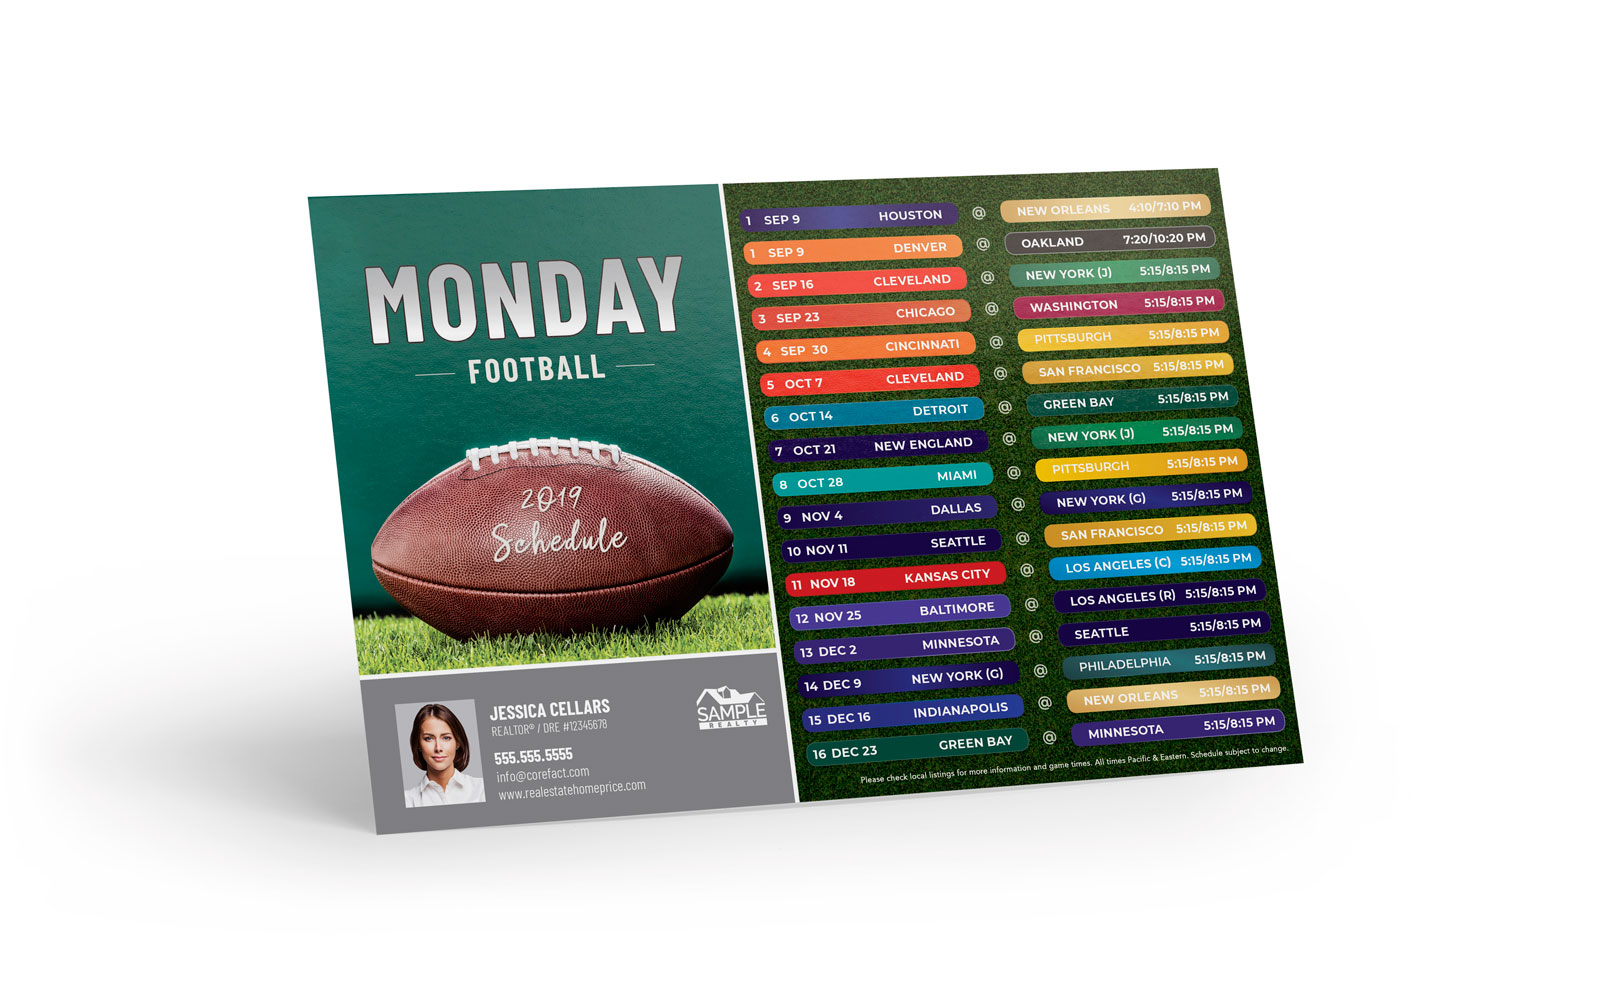 Corefact Sports - Football Monday